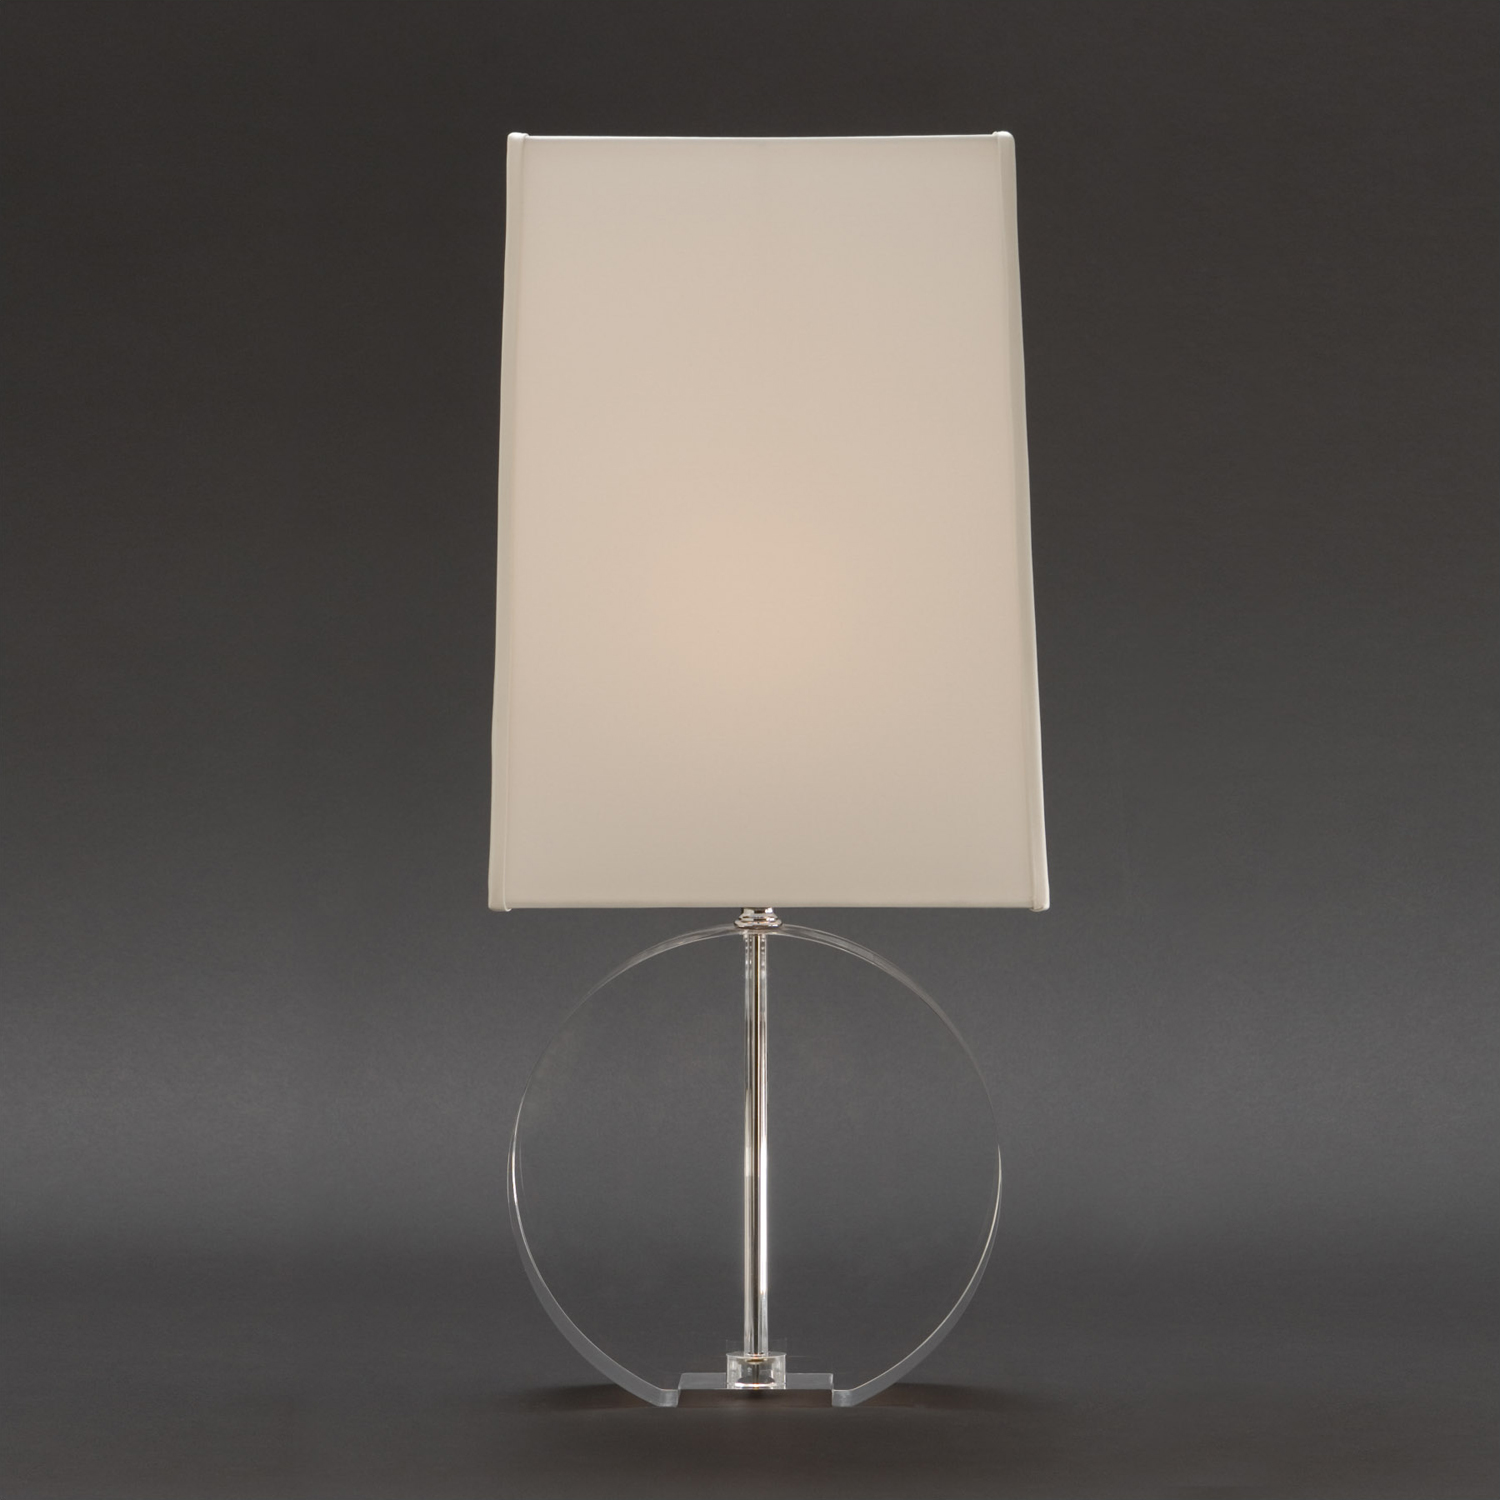 acrylic-lamps-photo-10